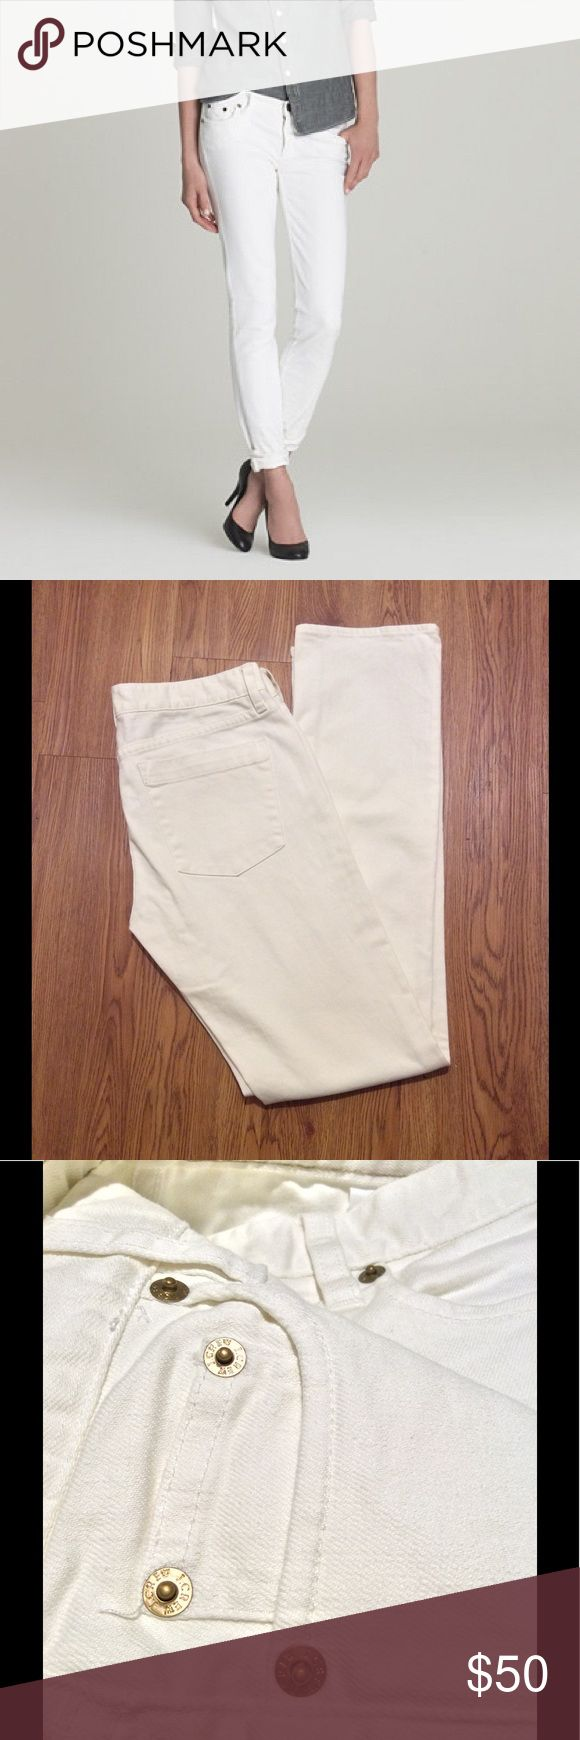 J Crew White Matchstick Jeans Great condition, worn twice, size 28, 2% elastine-some stretch, 31-inch inseam, not a pure white, but off-white J. Crew Jeans Skinny